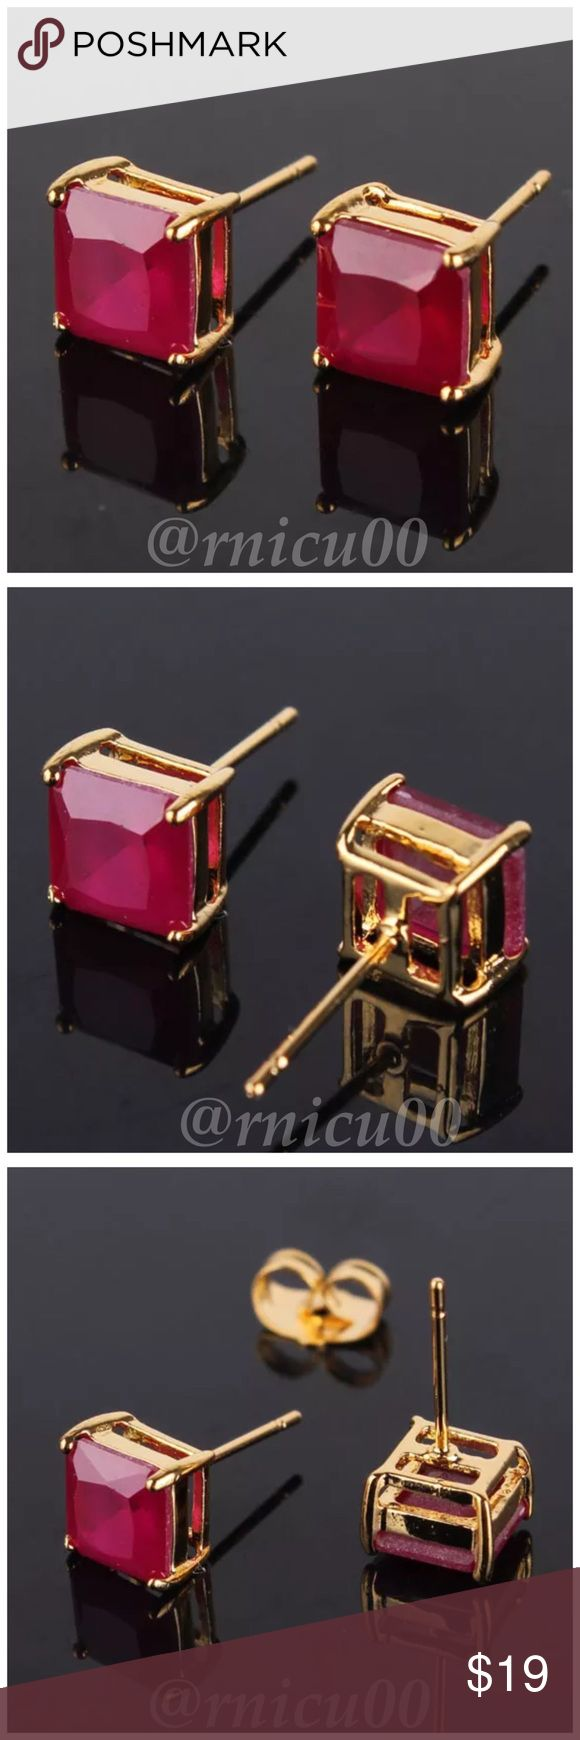 Listing! Ruby 24K Gold Filled Stud Earrings! Restock! Gorgeous Ruby Square Stud Earrings in 24K Gold Filling! Buy for yourself or make a Beautiful Gift!  * Earring Size: 15X7 mm * Gem: Ruby * Gem Size: 7mm * Metal: 24K Yellow Gold Filled (Please see listing re: Difference bet. Gold filled & Plated) * Gram Weight: 2.3g * Will be shipped in Jewelry Box  *NO TRADES *Prices are FIRM-Listed at Lowest Price Unless BUNDLED! *Sales are Final-Please Read Descriptions! Boutique Jewelry Earrings